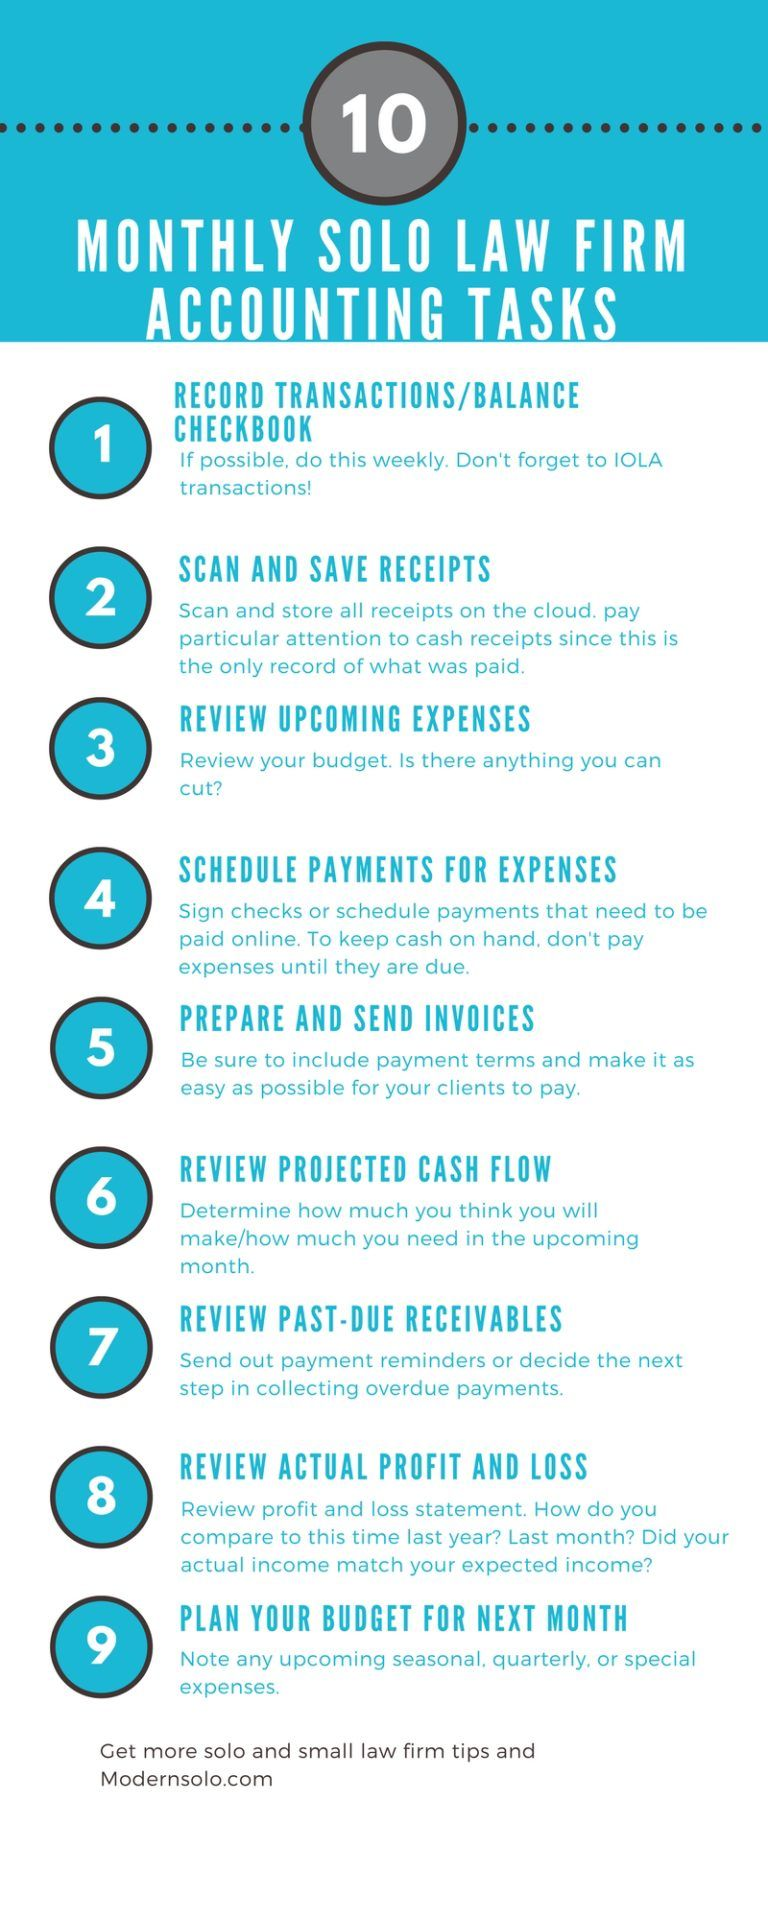 MONTHLY SOLO LAW FIRM ACCOUNTING (Infographic) - Modern Solo